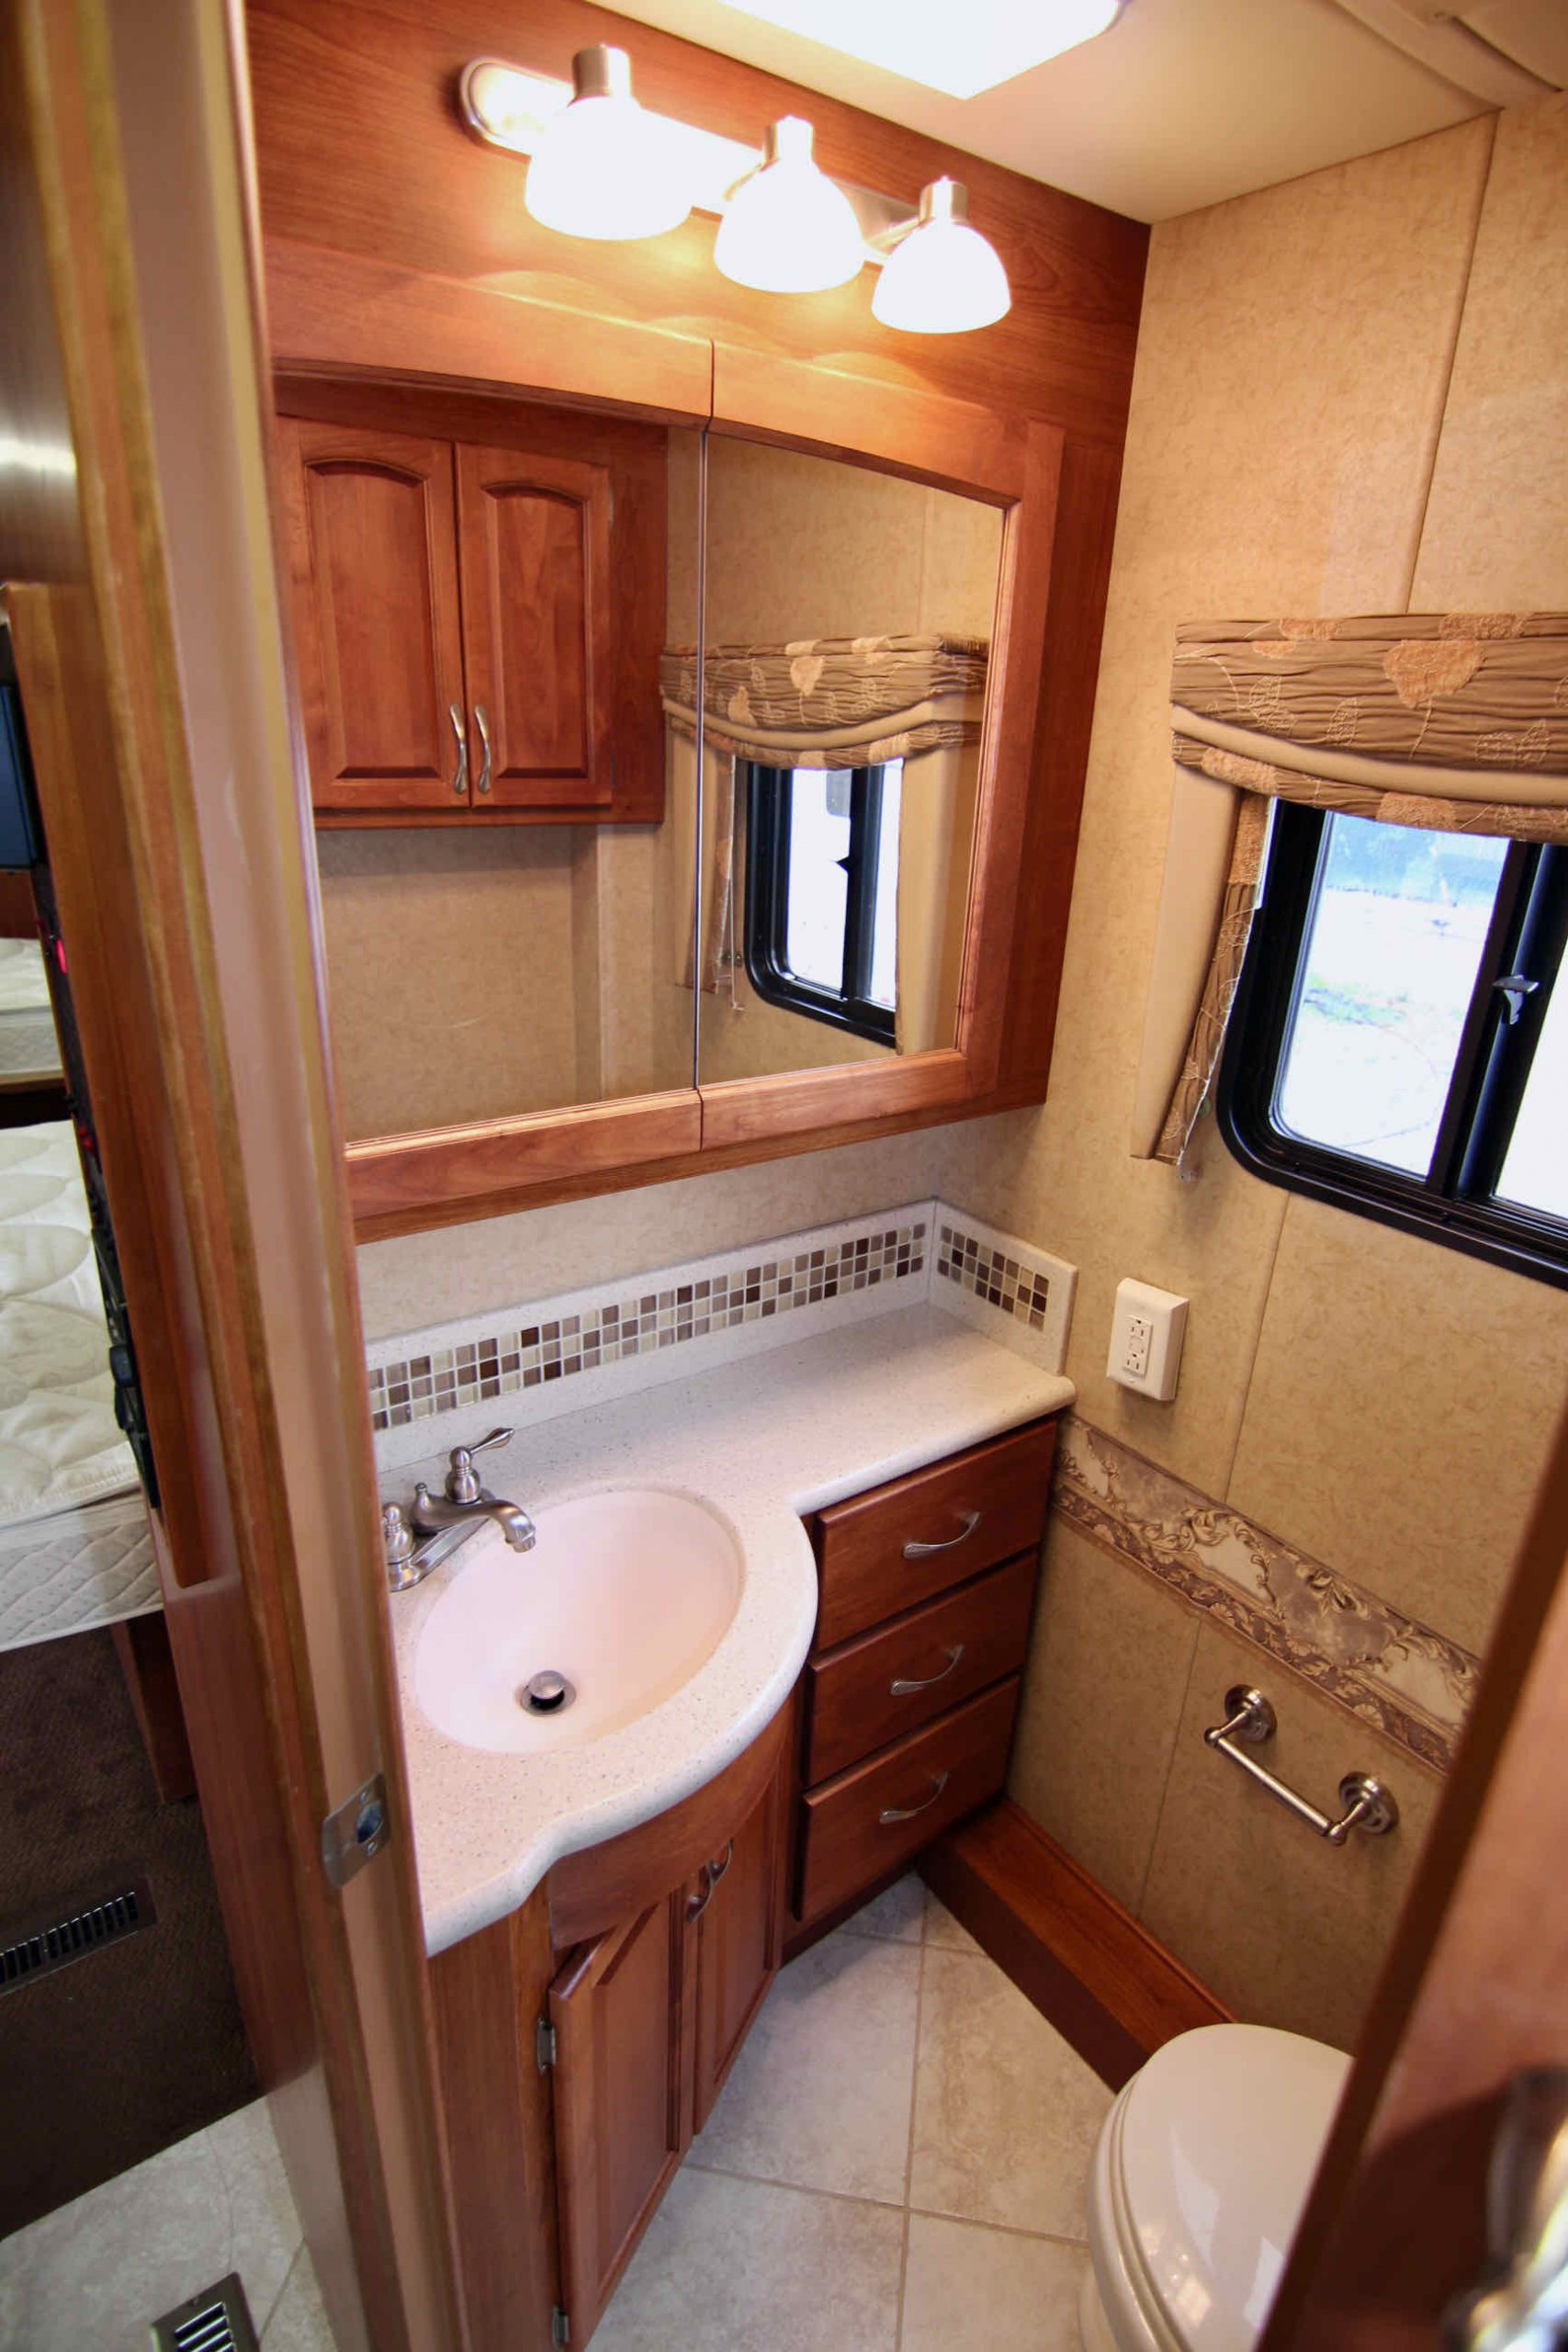 2008 Monaco Knight 38PDQ Class A Diesel, Four Slide-Outs full